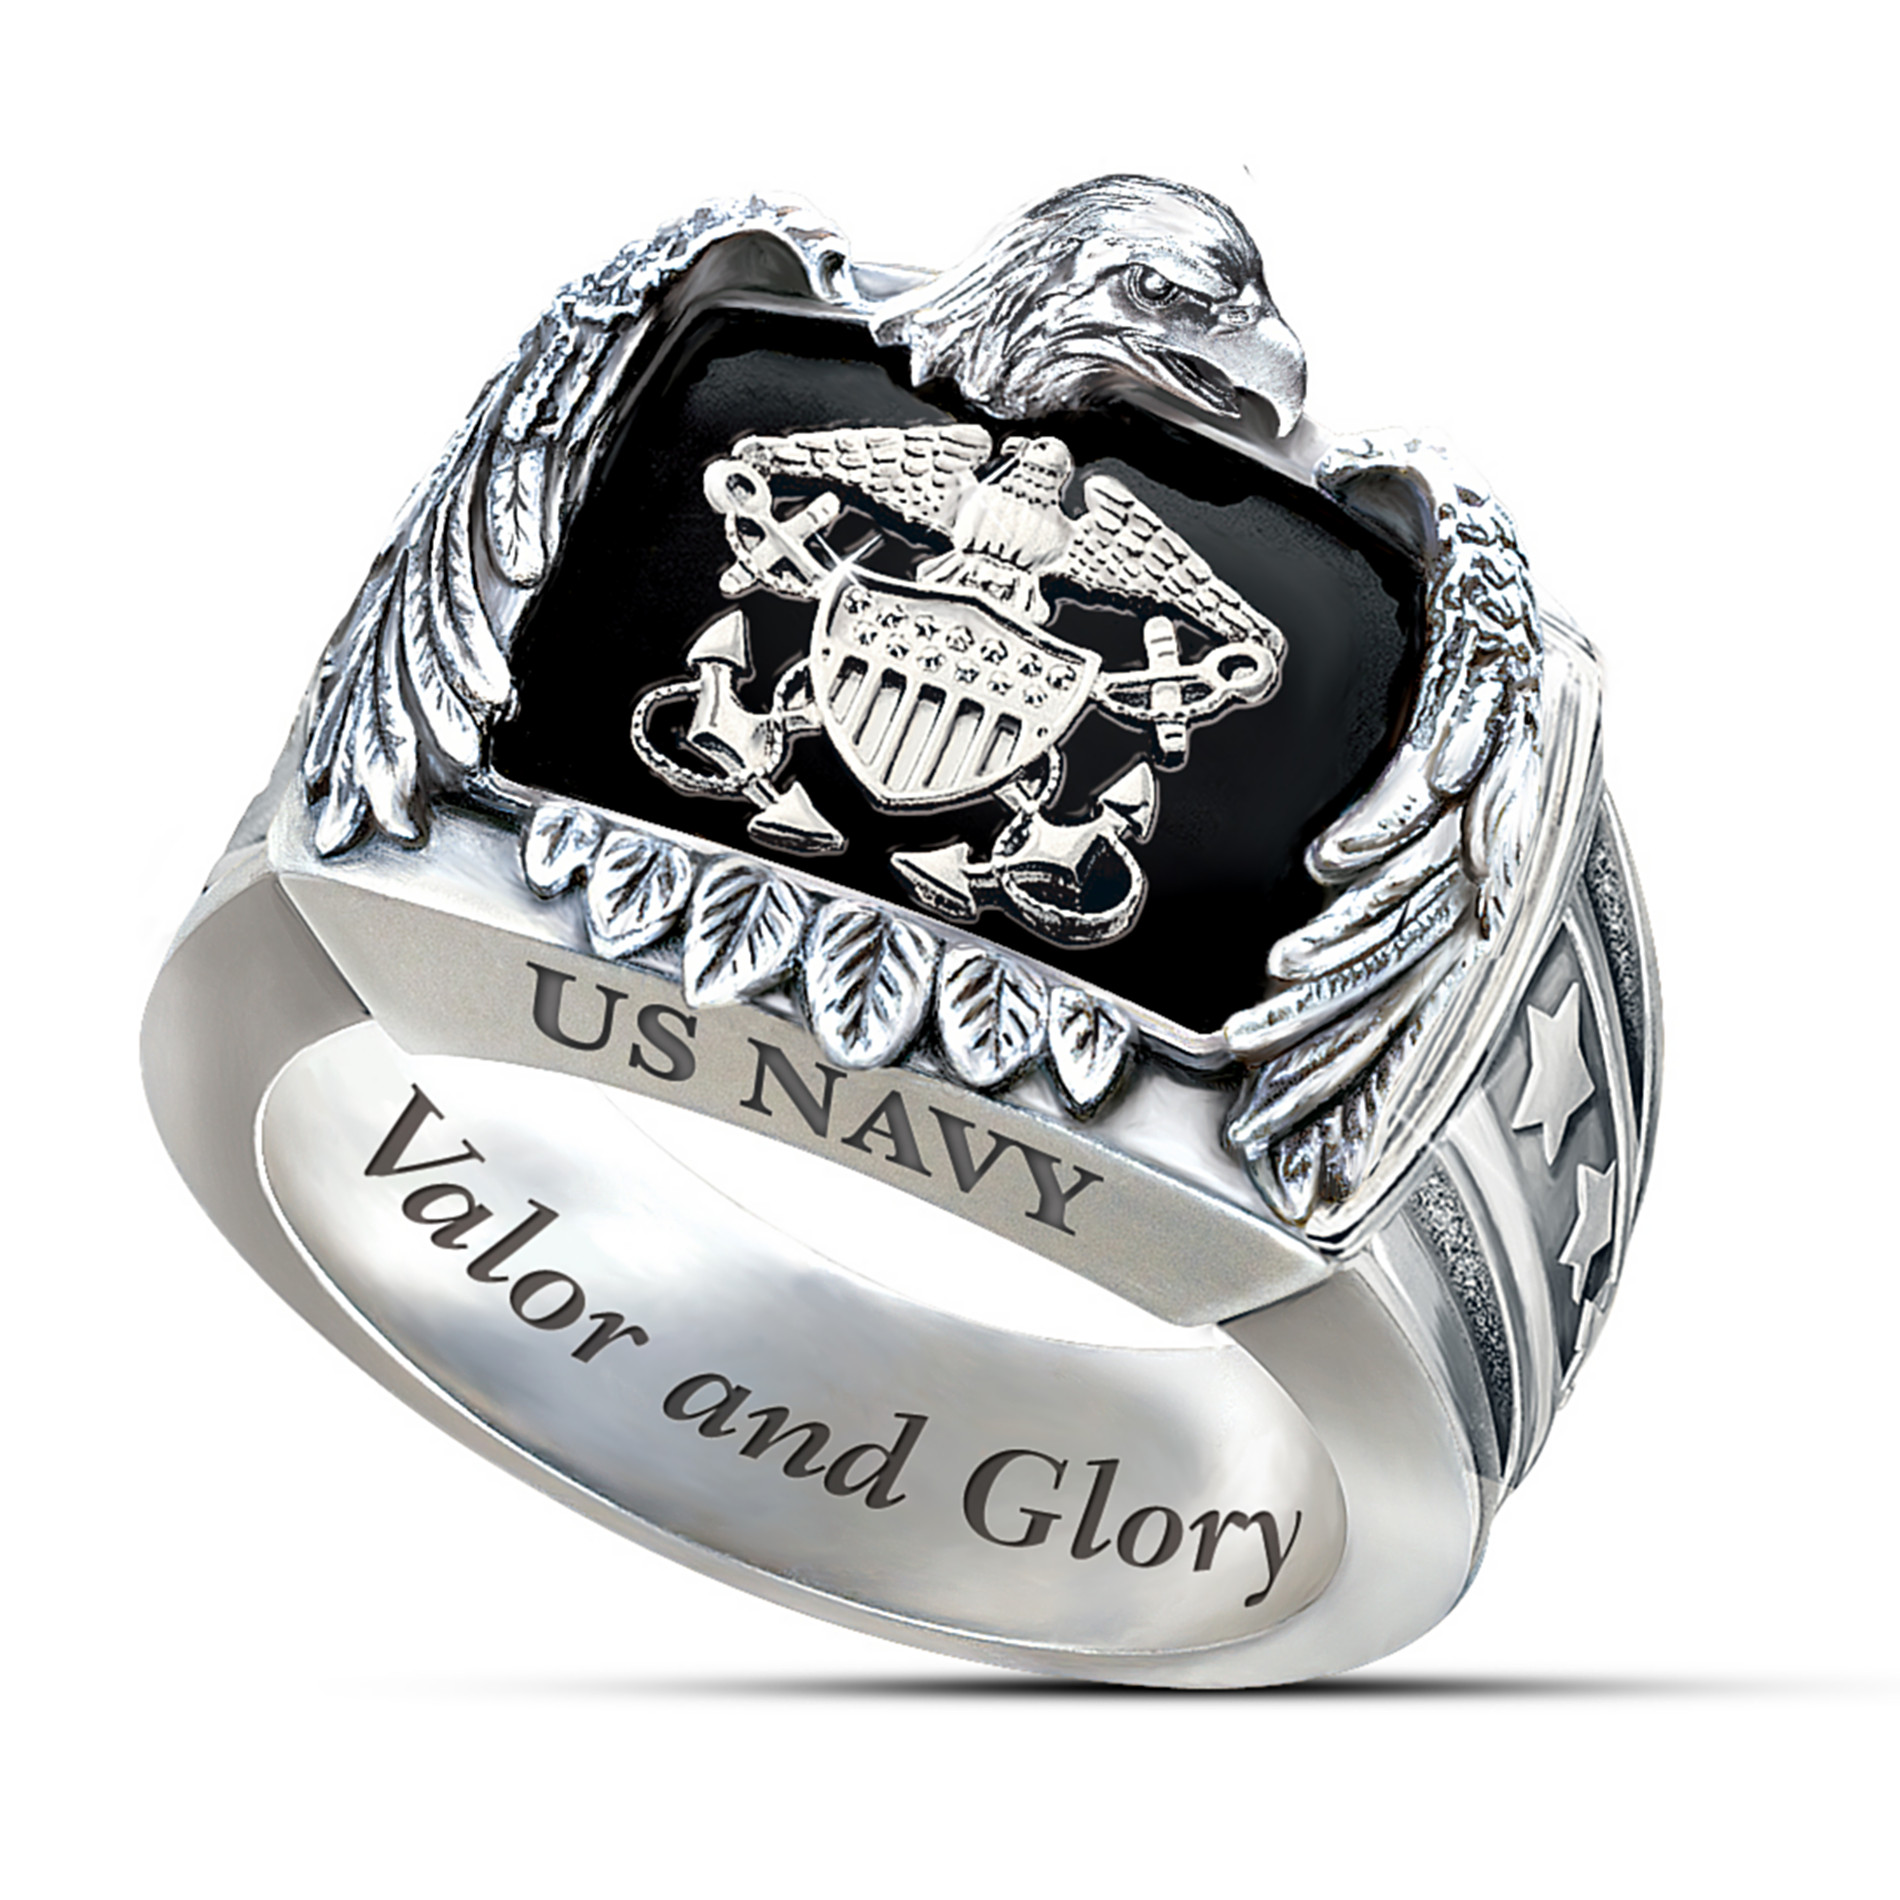 The Bradford Exchange Sterling Silver US Navy Ring At Sears